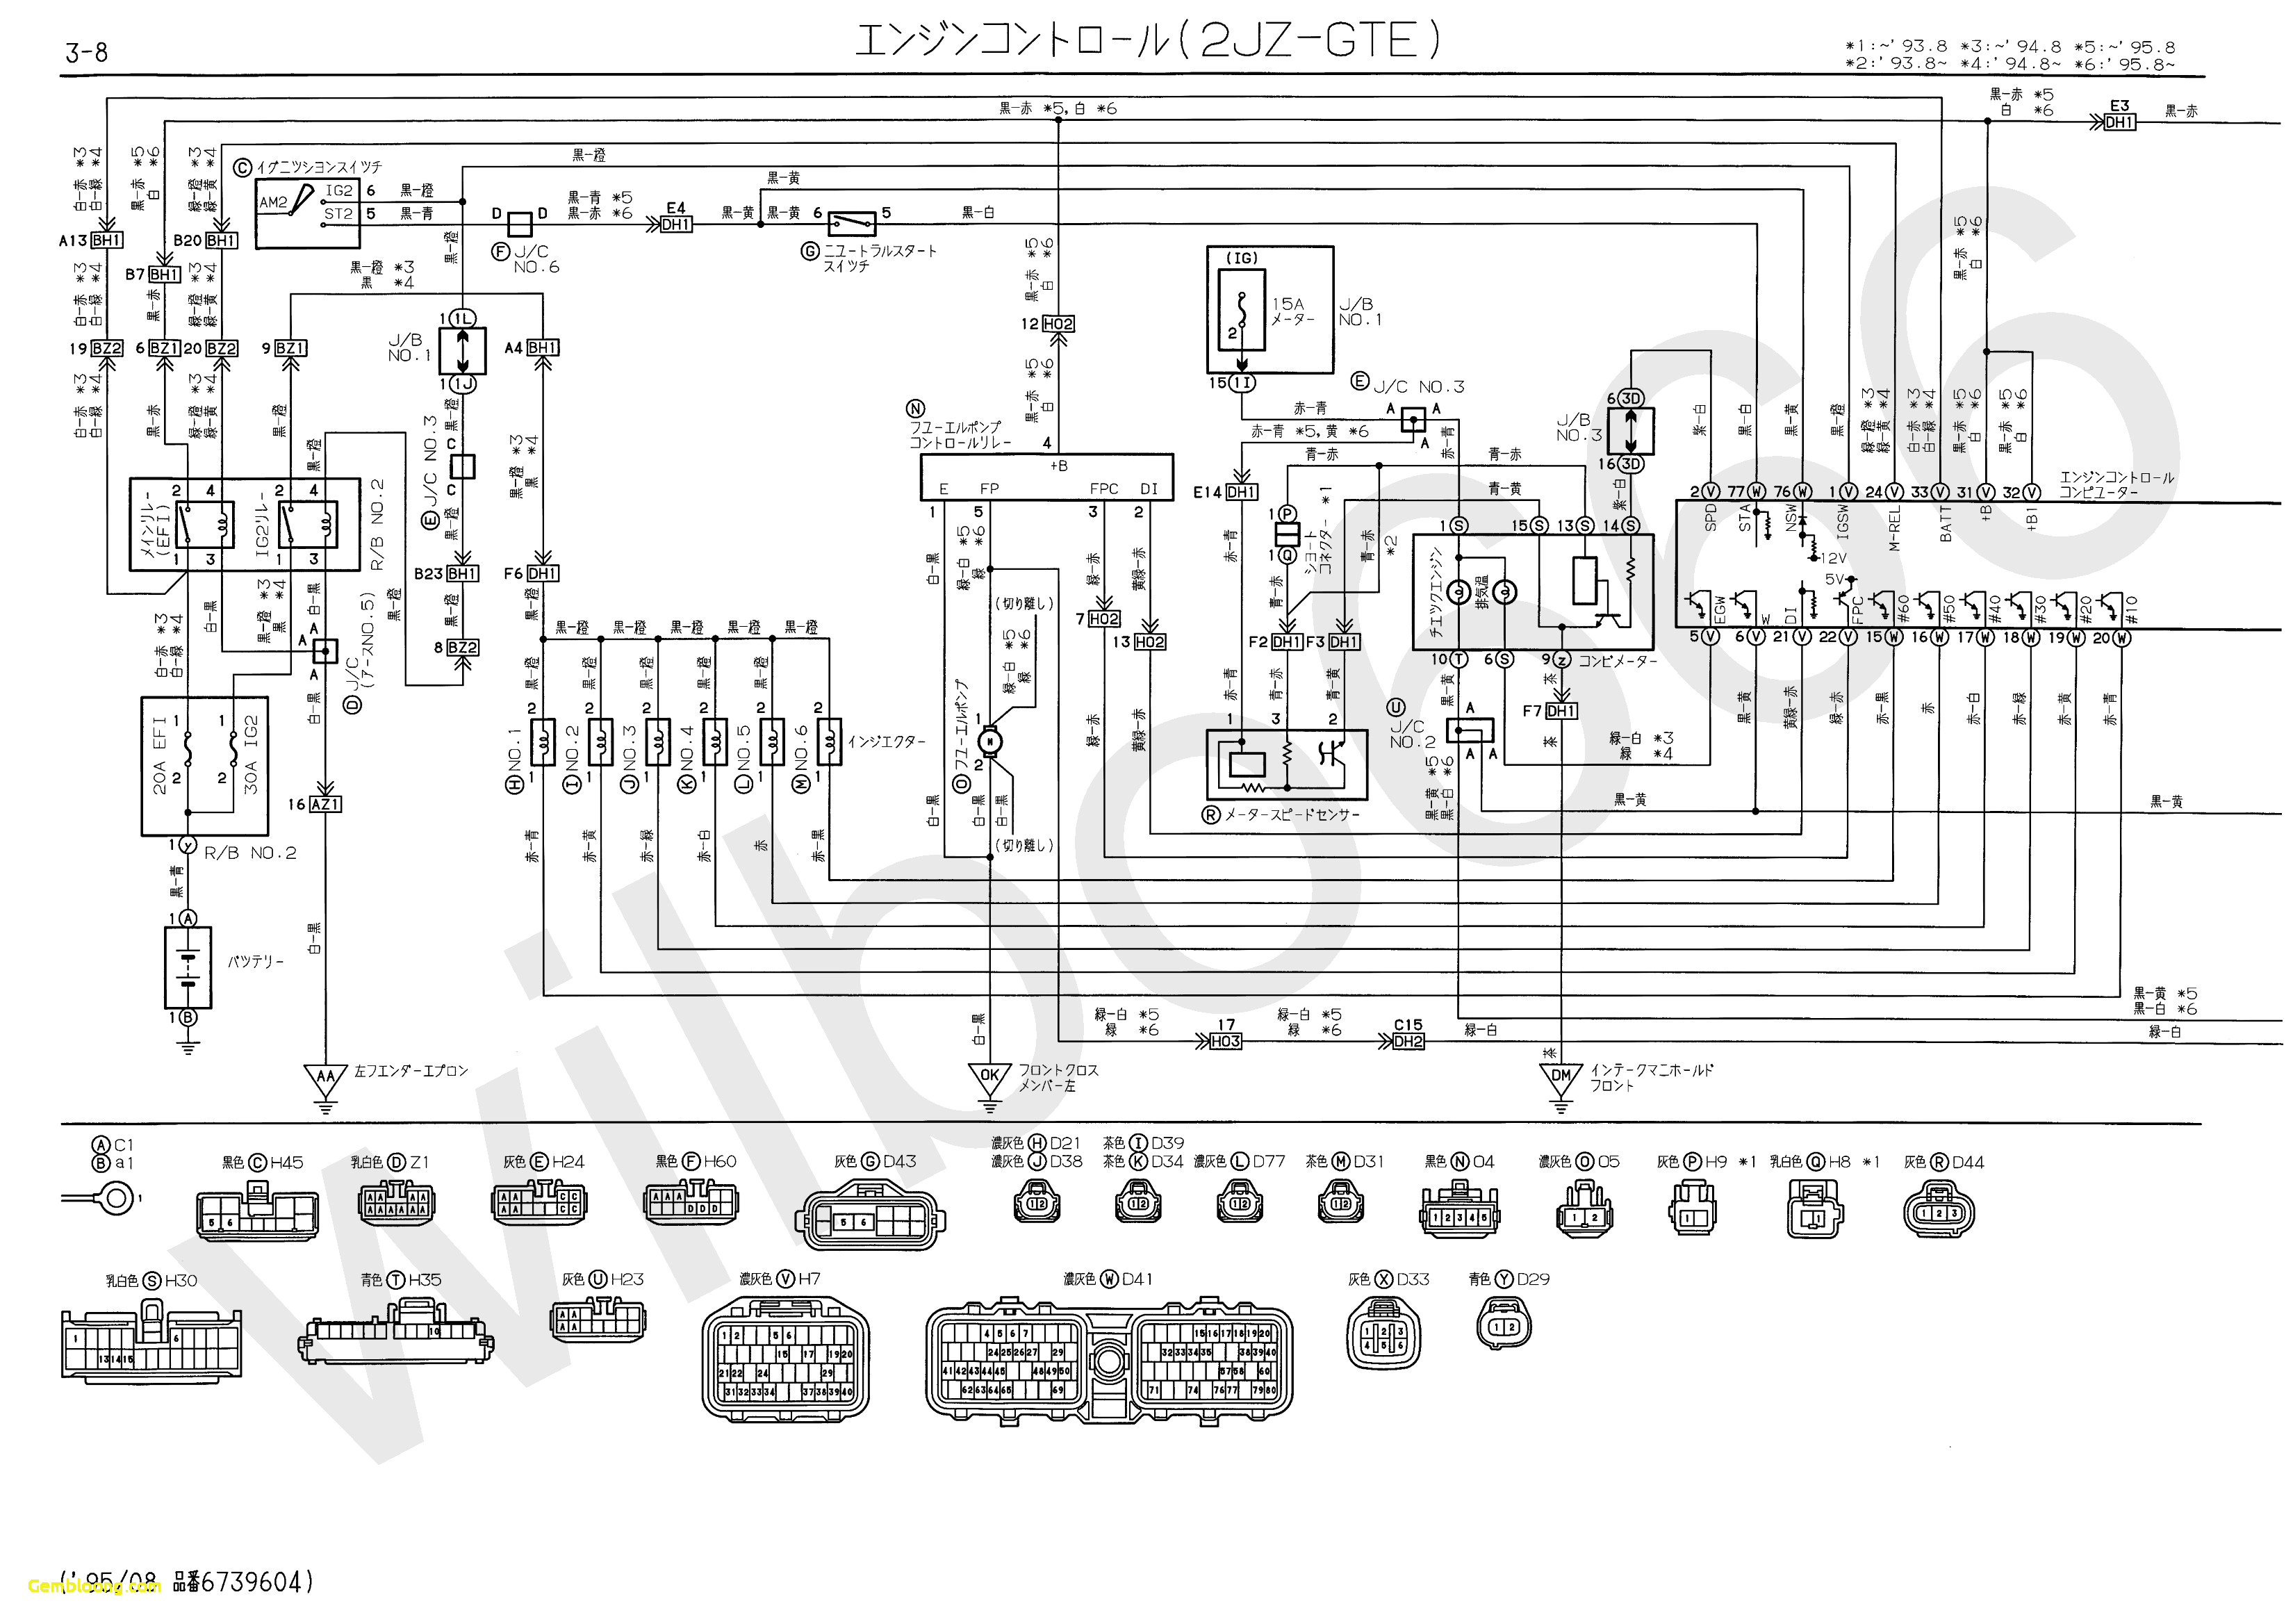 Bmw E36 Wiring Diagram Bmw E36 Wiring Diagram Download Wiring Diagram toolbox